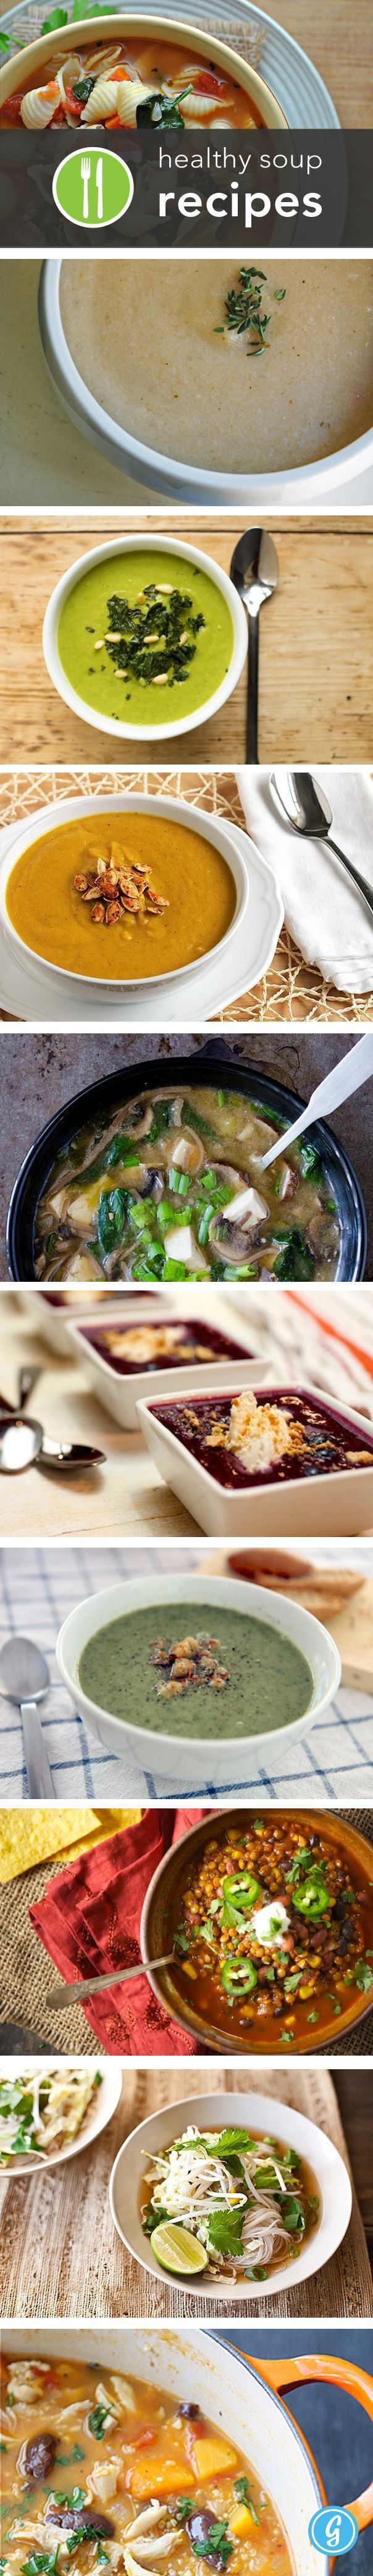 10 Healthy Soup Recipes #healthyeating #recipe